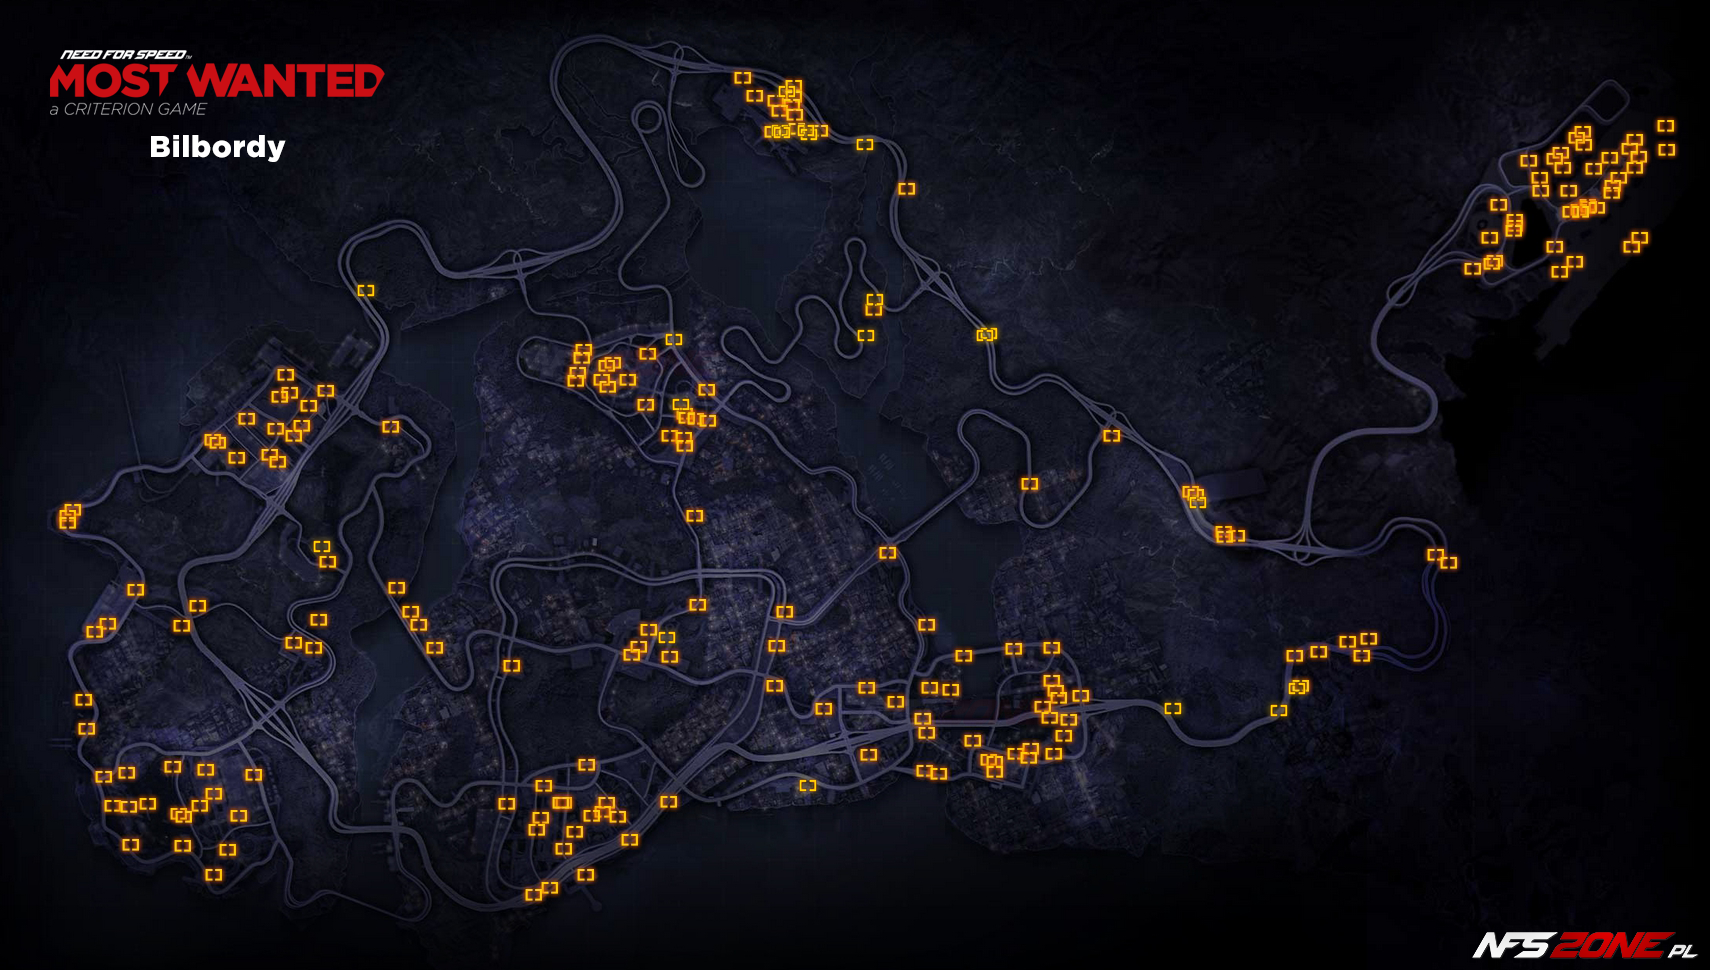 NFS - Need for Speed Most Wanted (2012) - mapa bilbordy Fairhaven - Billboards Map